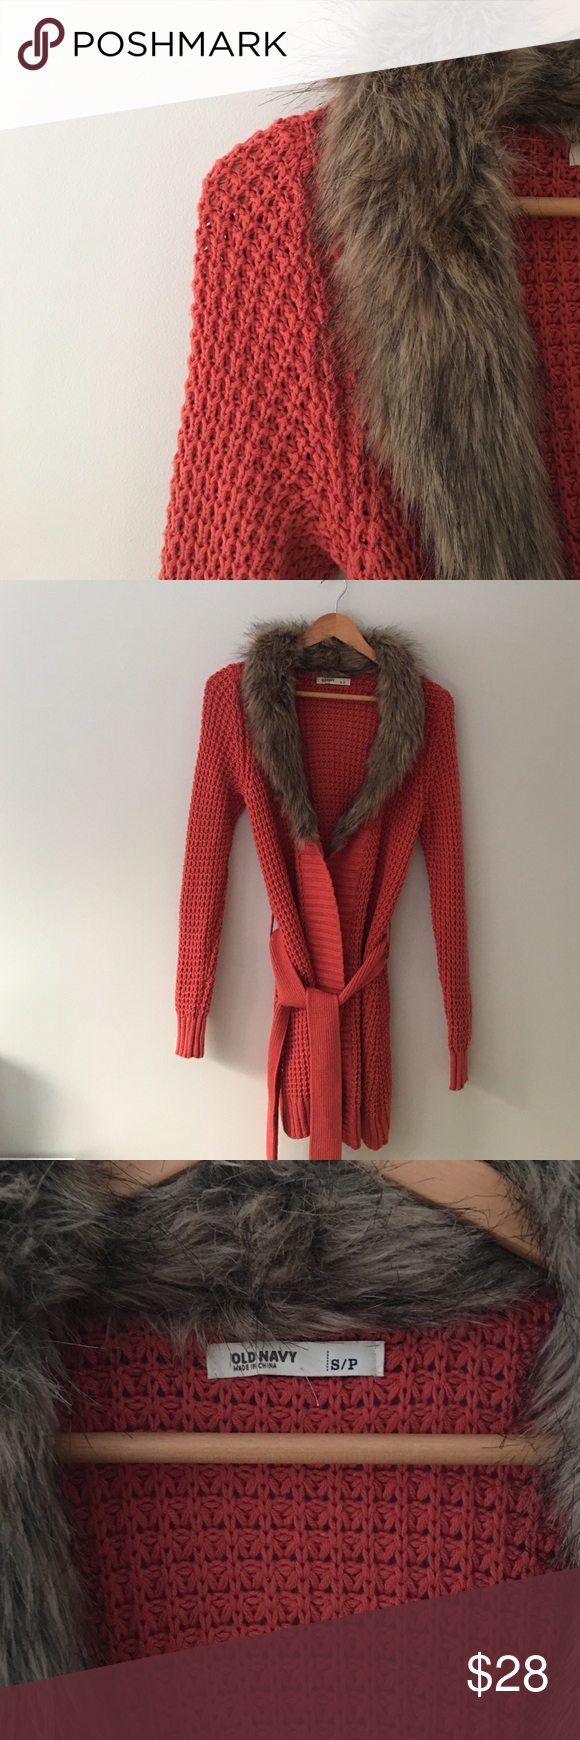 Old Navy Fur Collar Long Cardigan Stunning fur collar cardigan by Old Navy.  Burnt orange. Sash for tie closure. Size Small. EUC. Old Navy Sweaters Cardigans